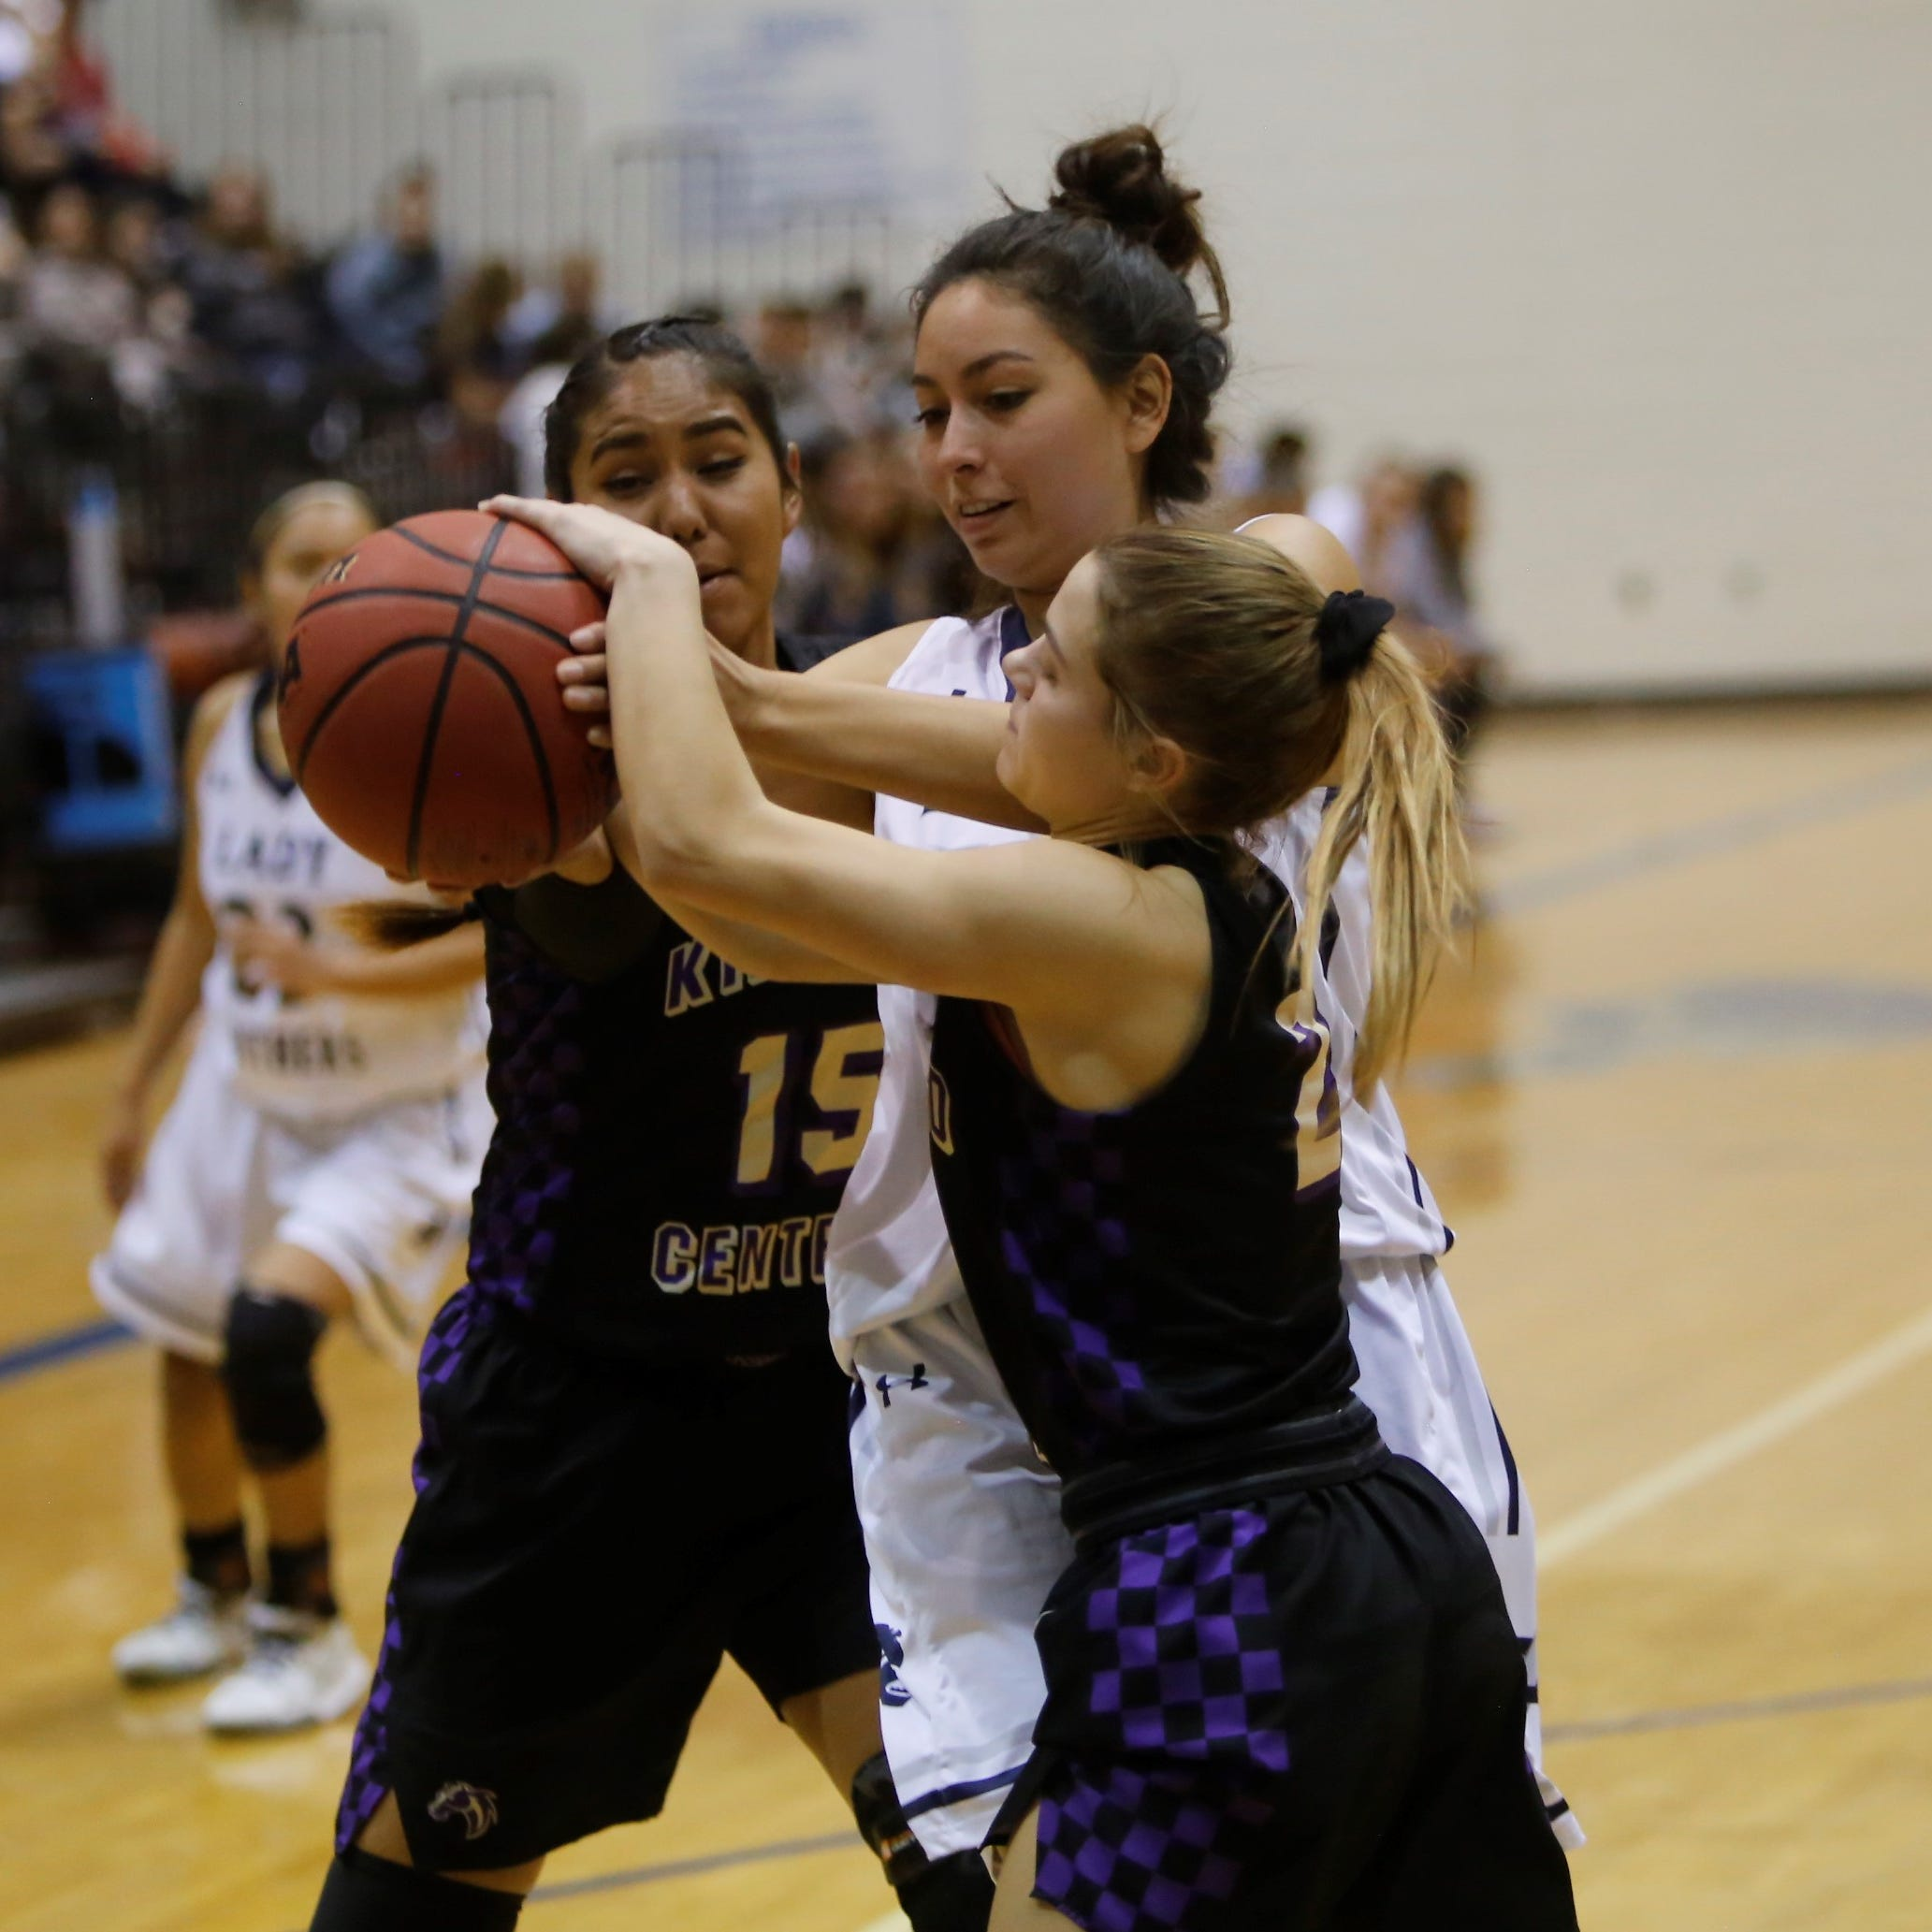 Girls basketball standings, key games to watch